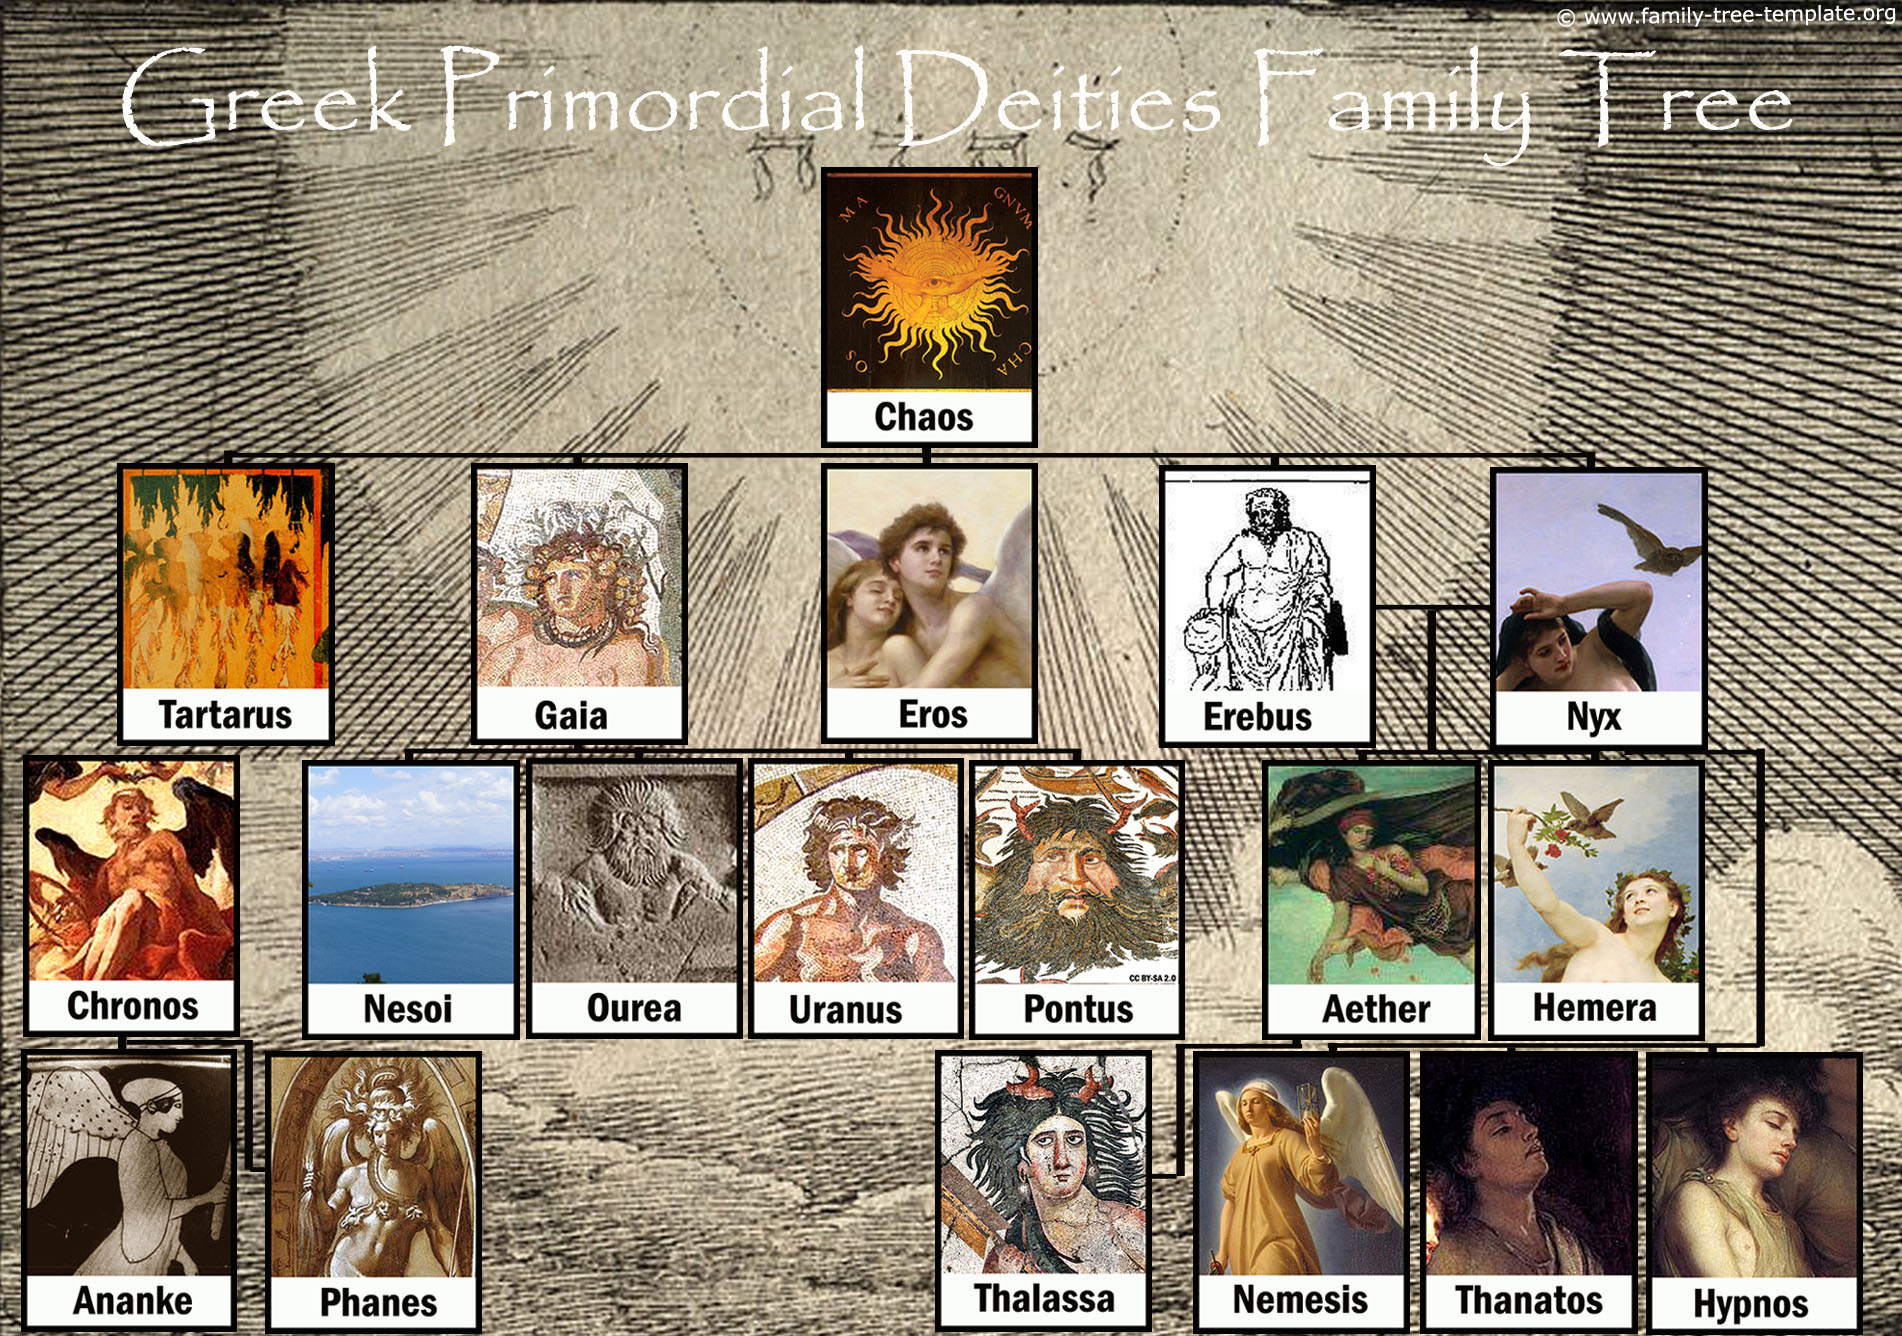 Greek god family tree with the Primordial deities from Greek mythology.